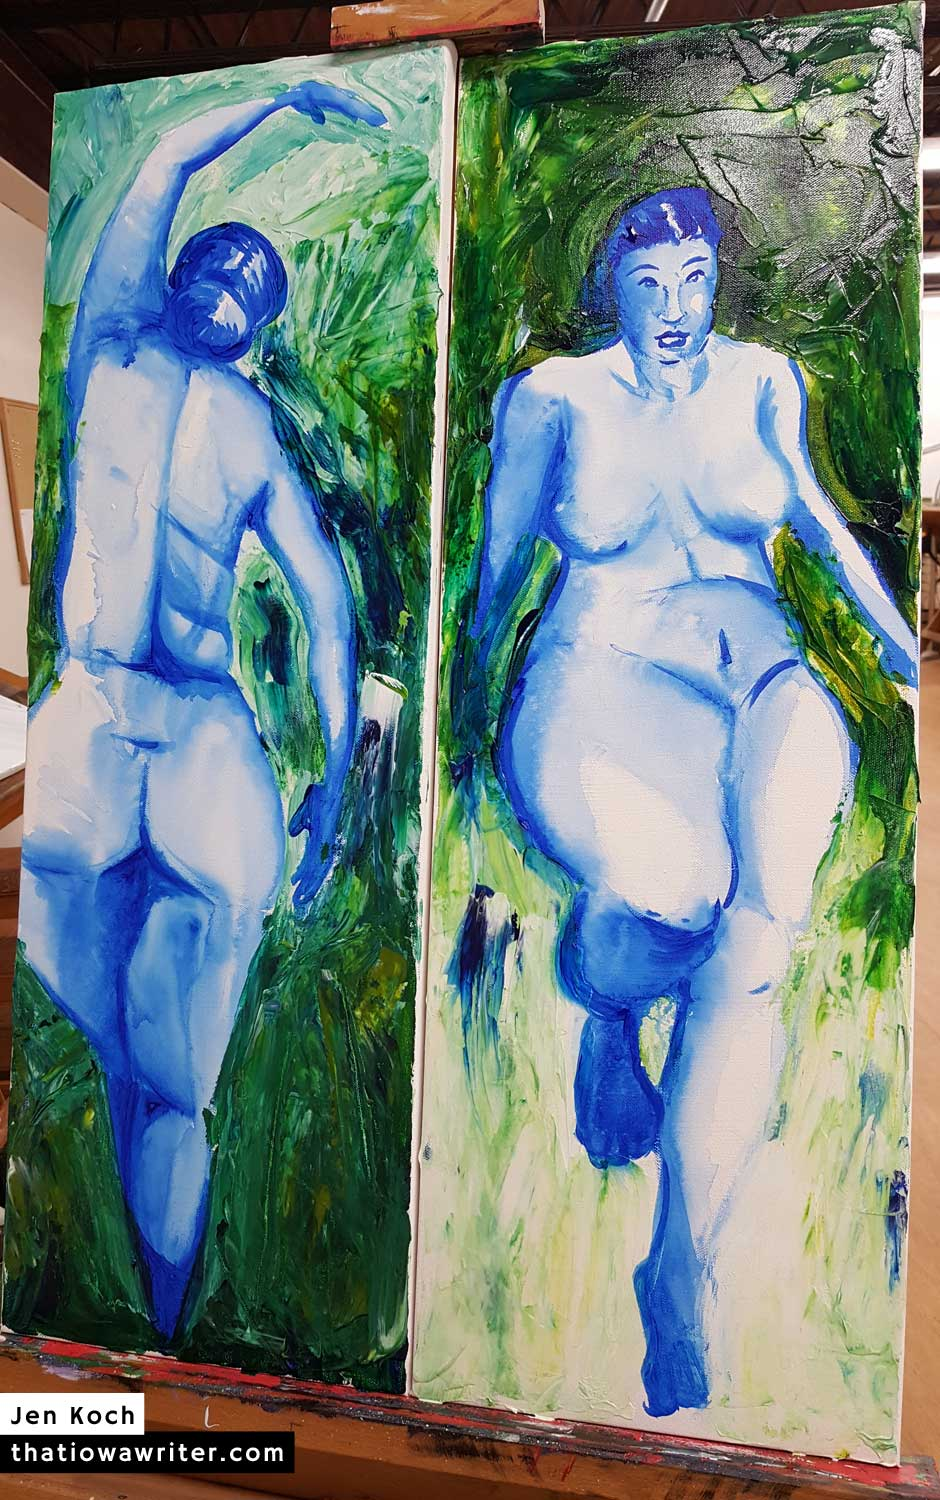 Blue Ladies, Dyptich by Jen Koch. 2018. Acrylic on canvas.